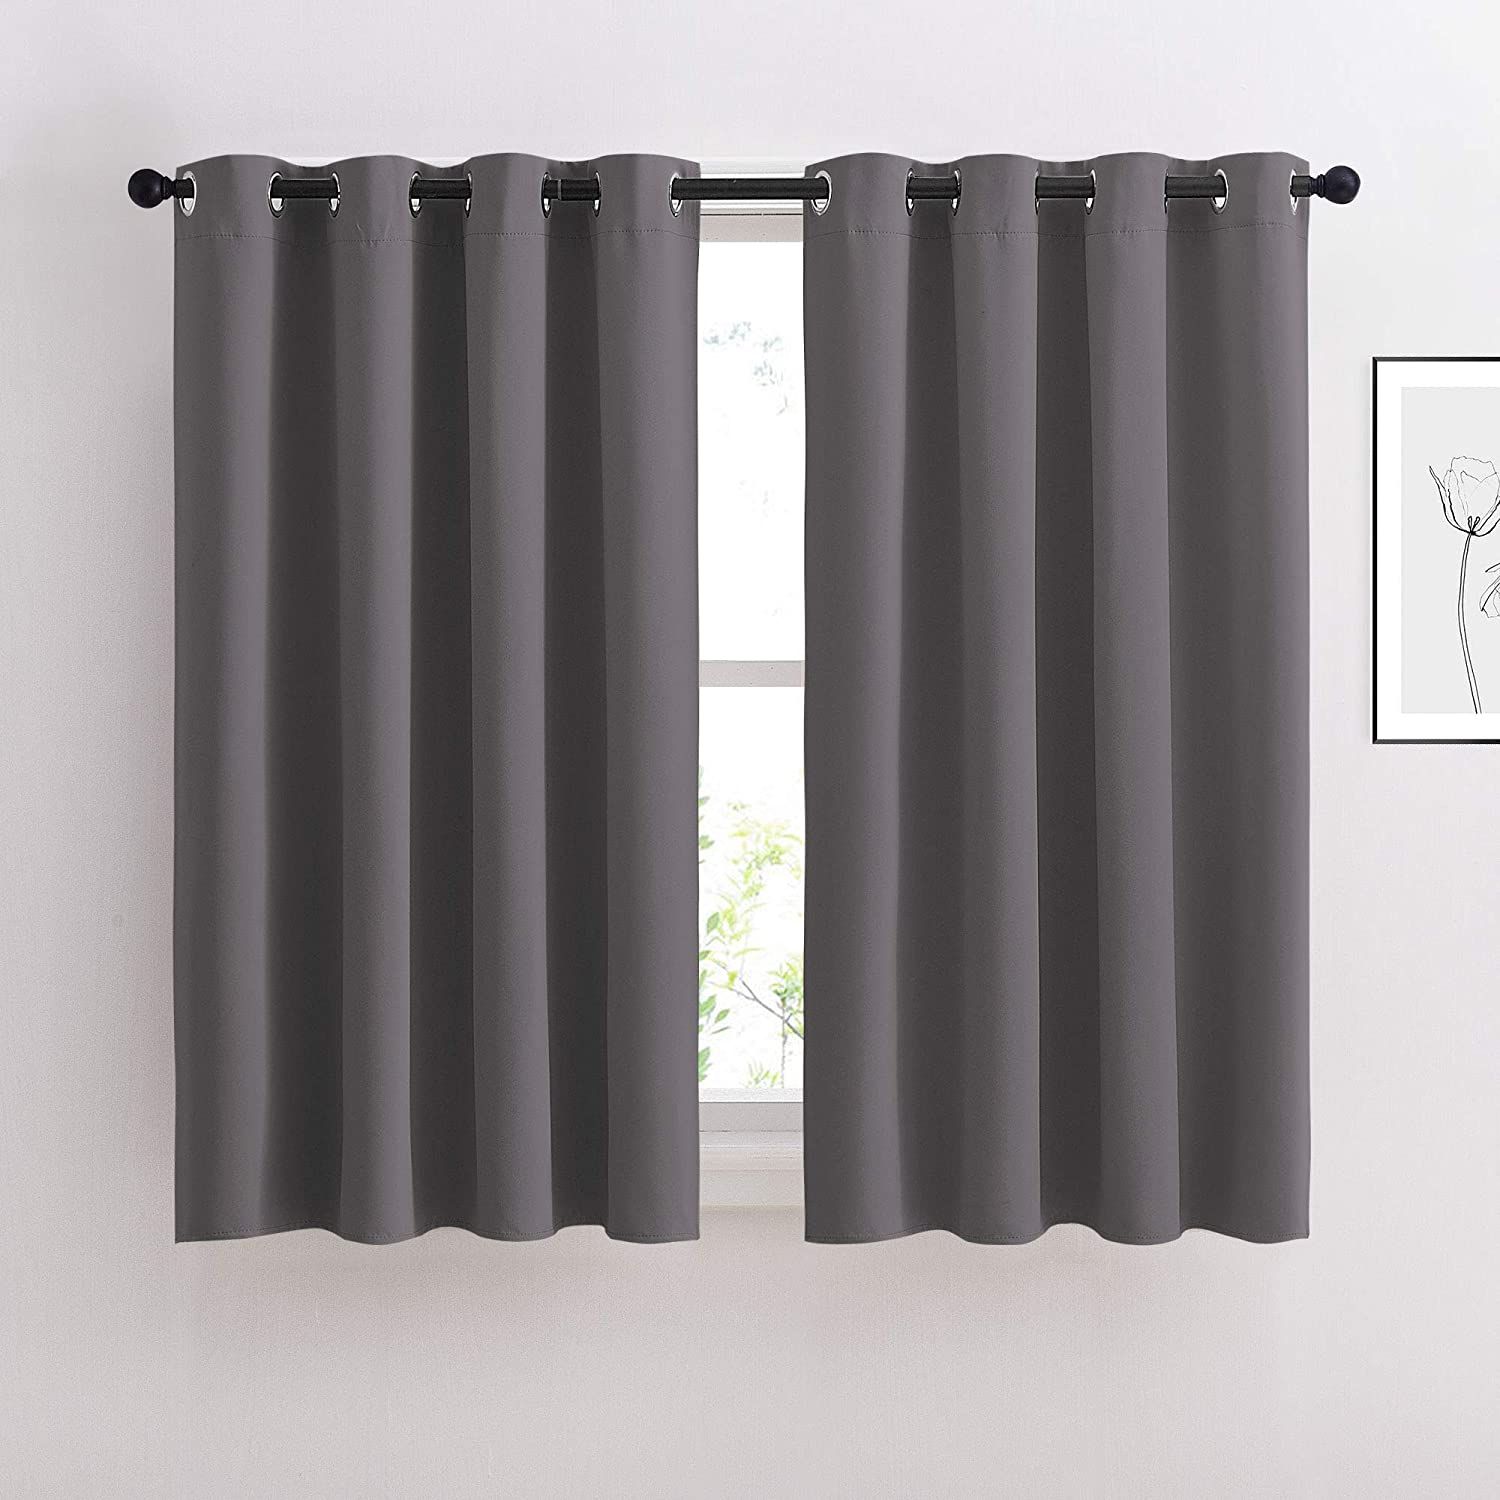 The 4 best blackout curtains in 2021